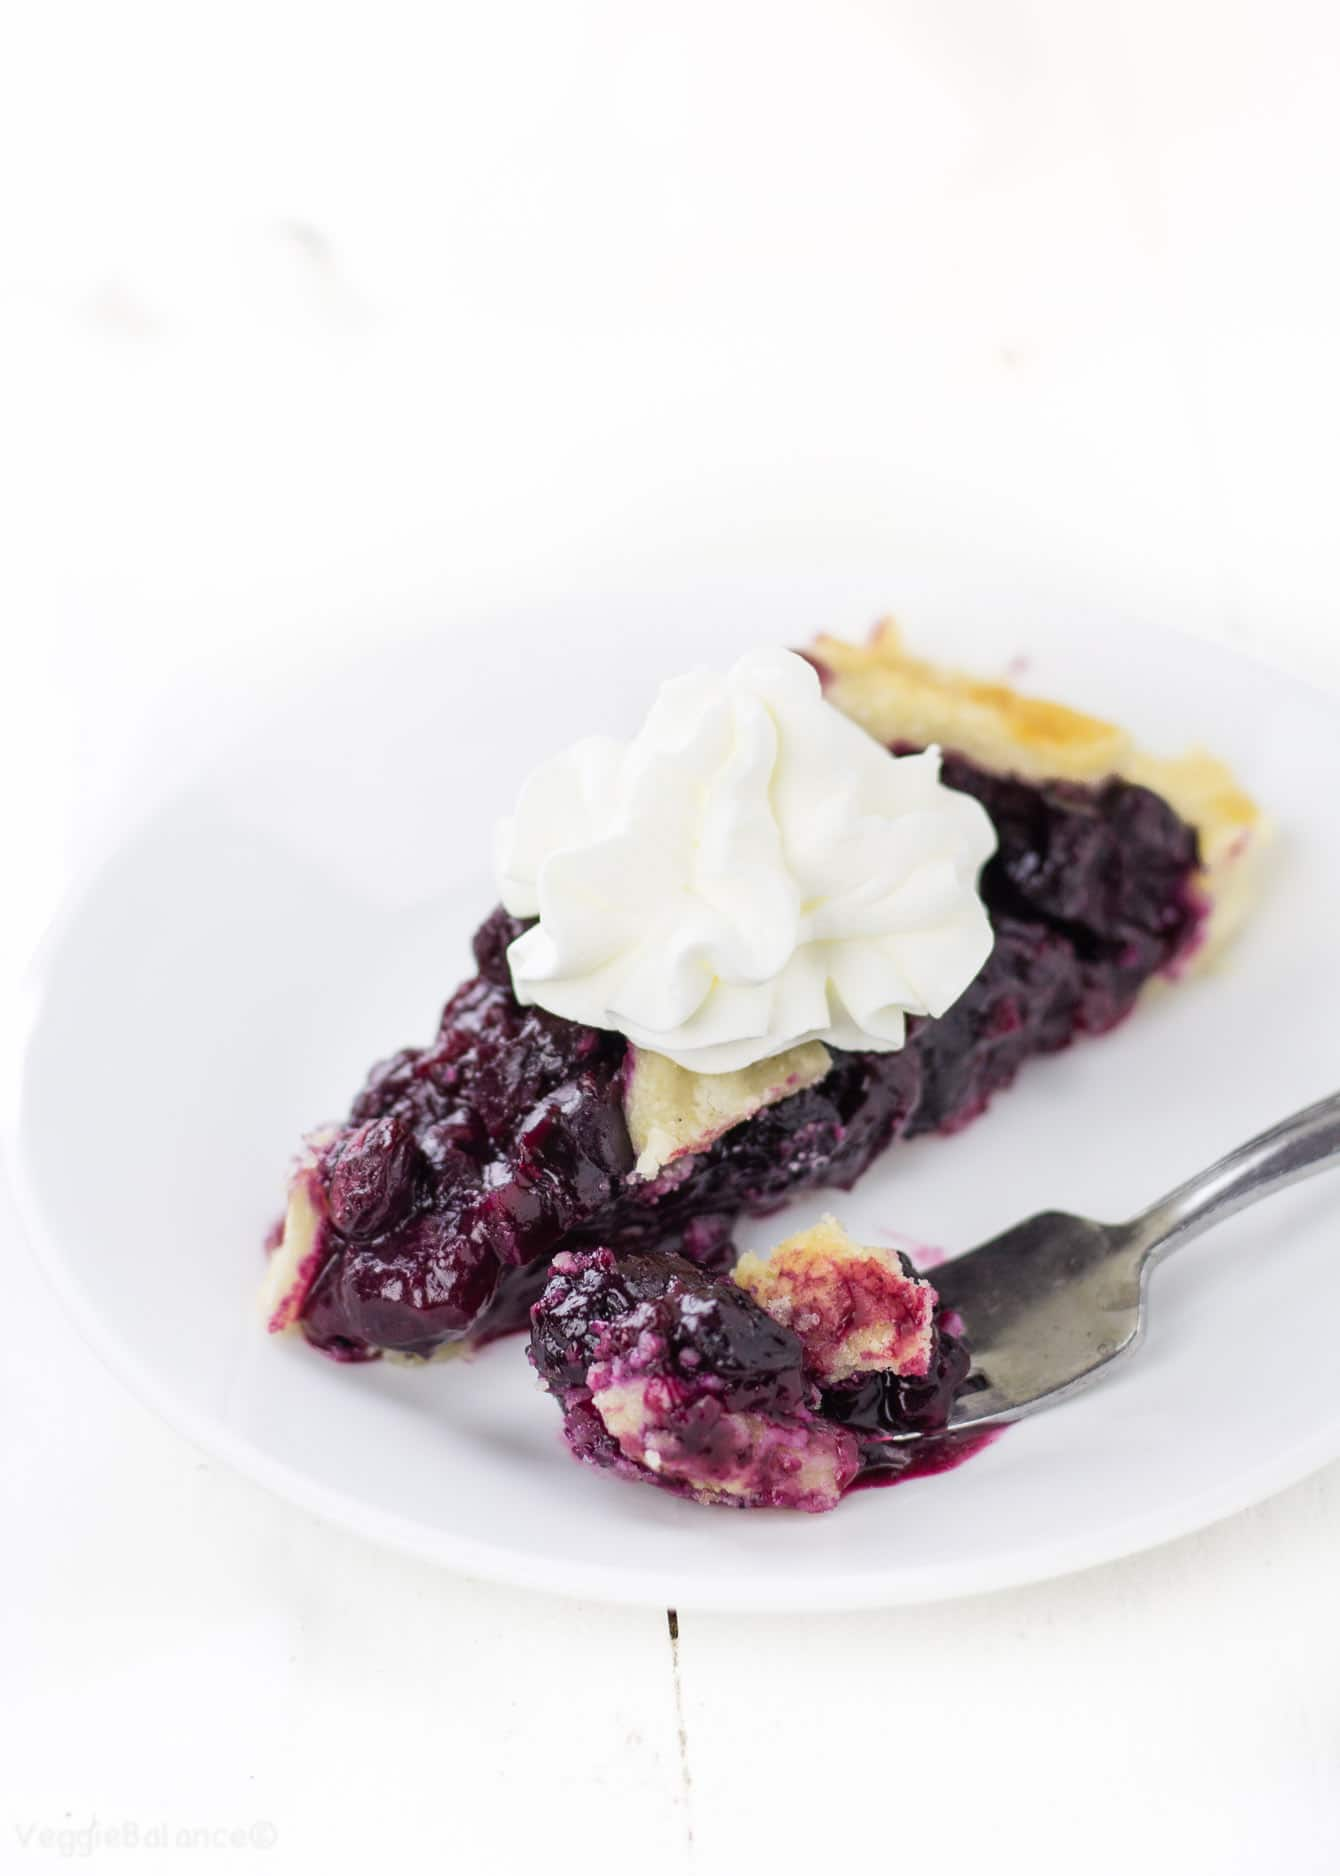 Gluten Free Pie Crust recipe with a Perfect Blueberry Filling - Veggiebalance.com